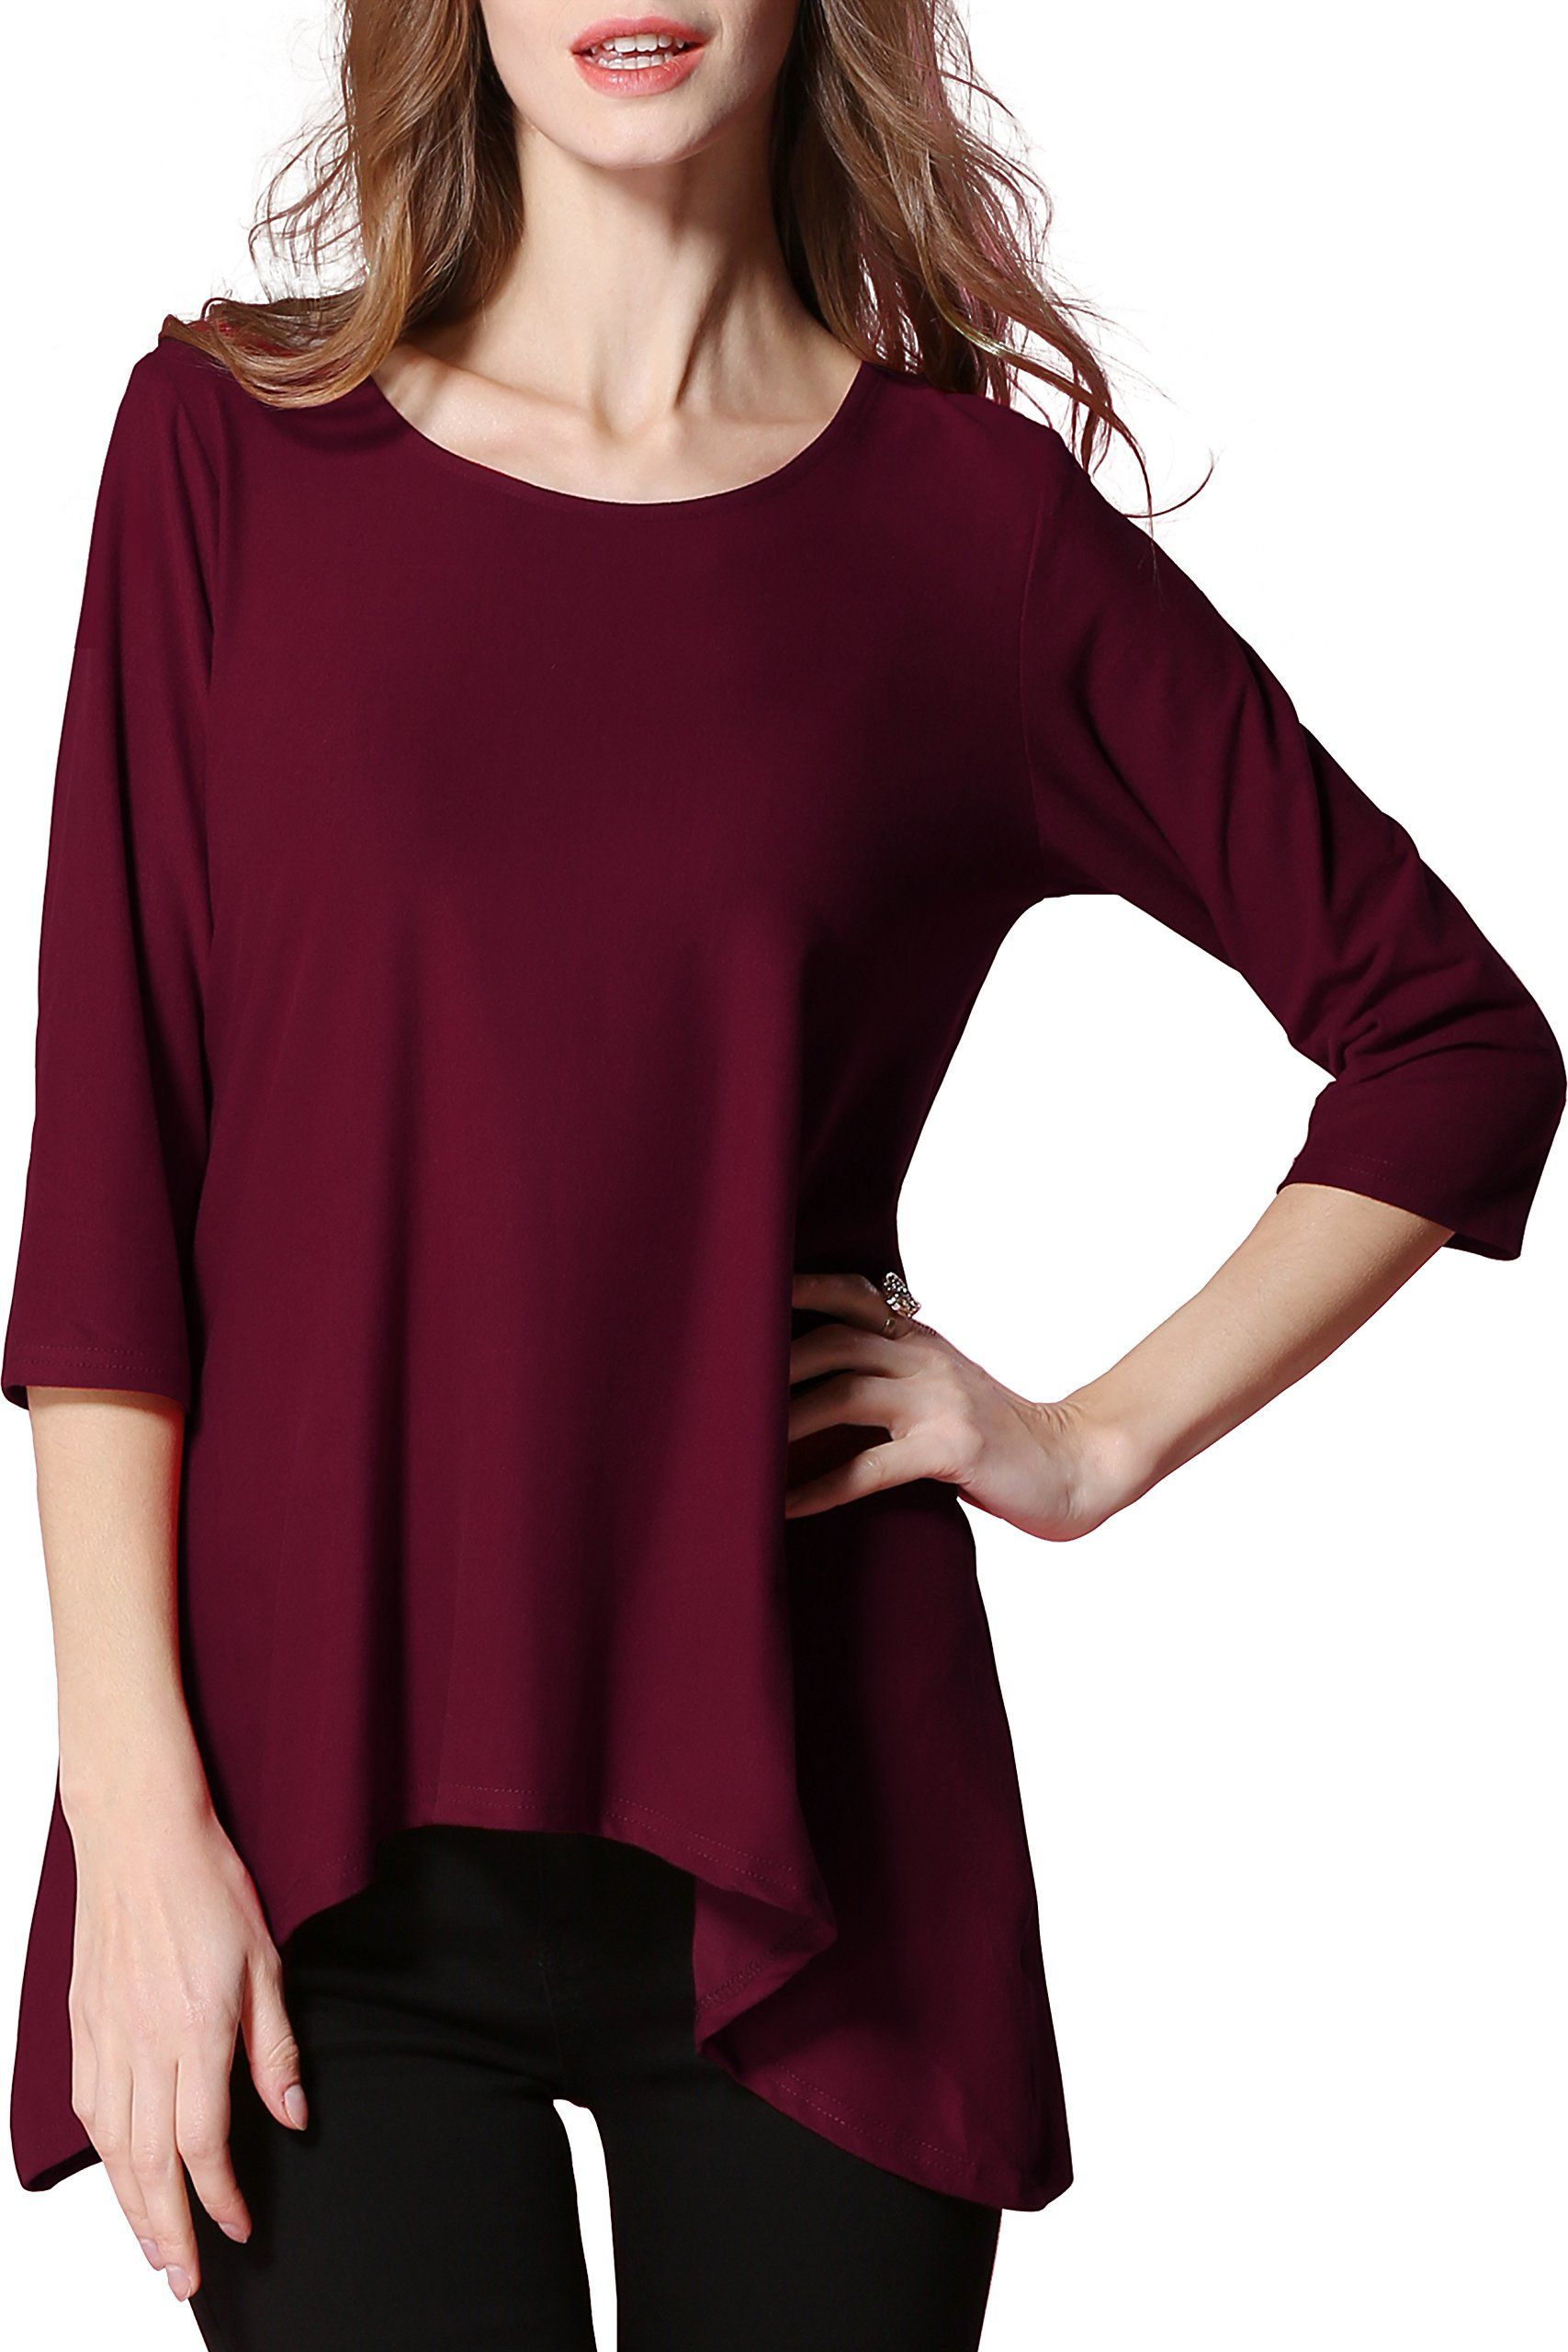 5c7612ded69 Maternity Styles - oversized maternity leggings   Girl2Queen Womens  Maternity Clothes Swing Summer Tunic Tops Loose Tunic 3 4 Sleeve Shirts for  Women     ...